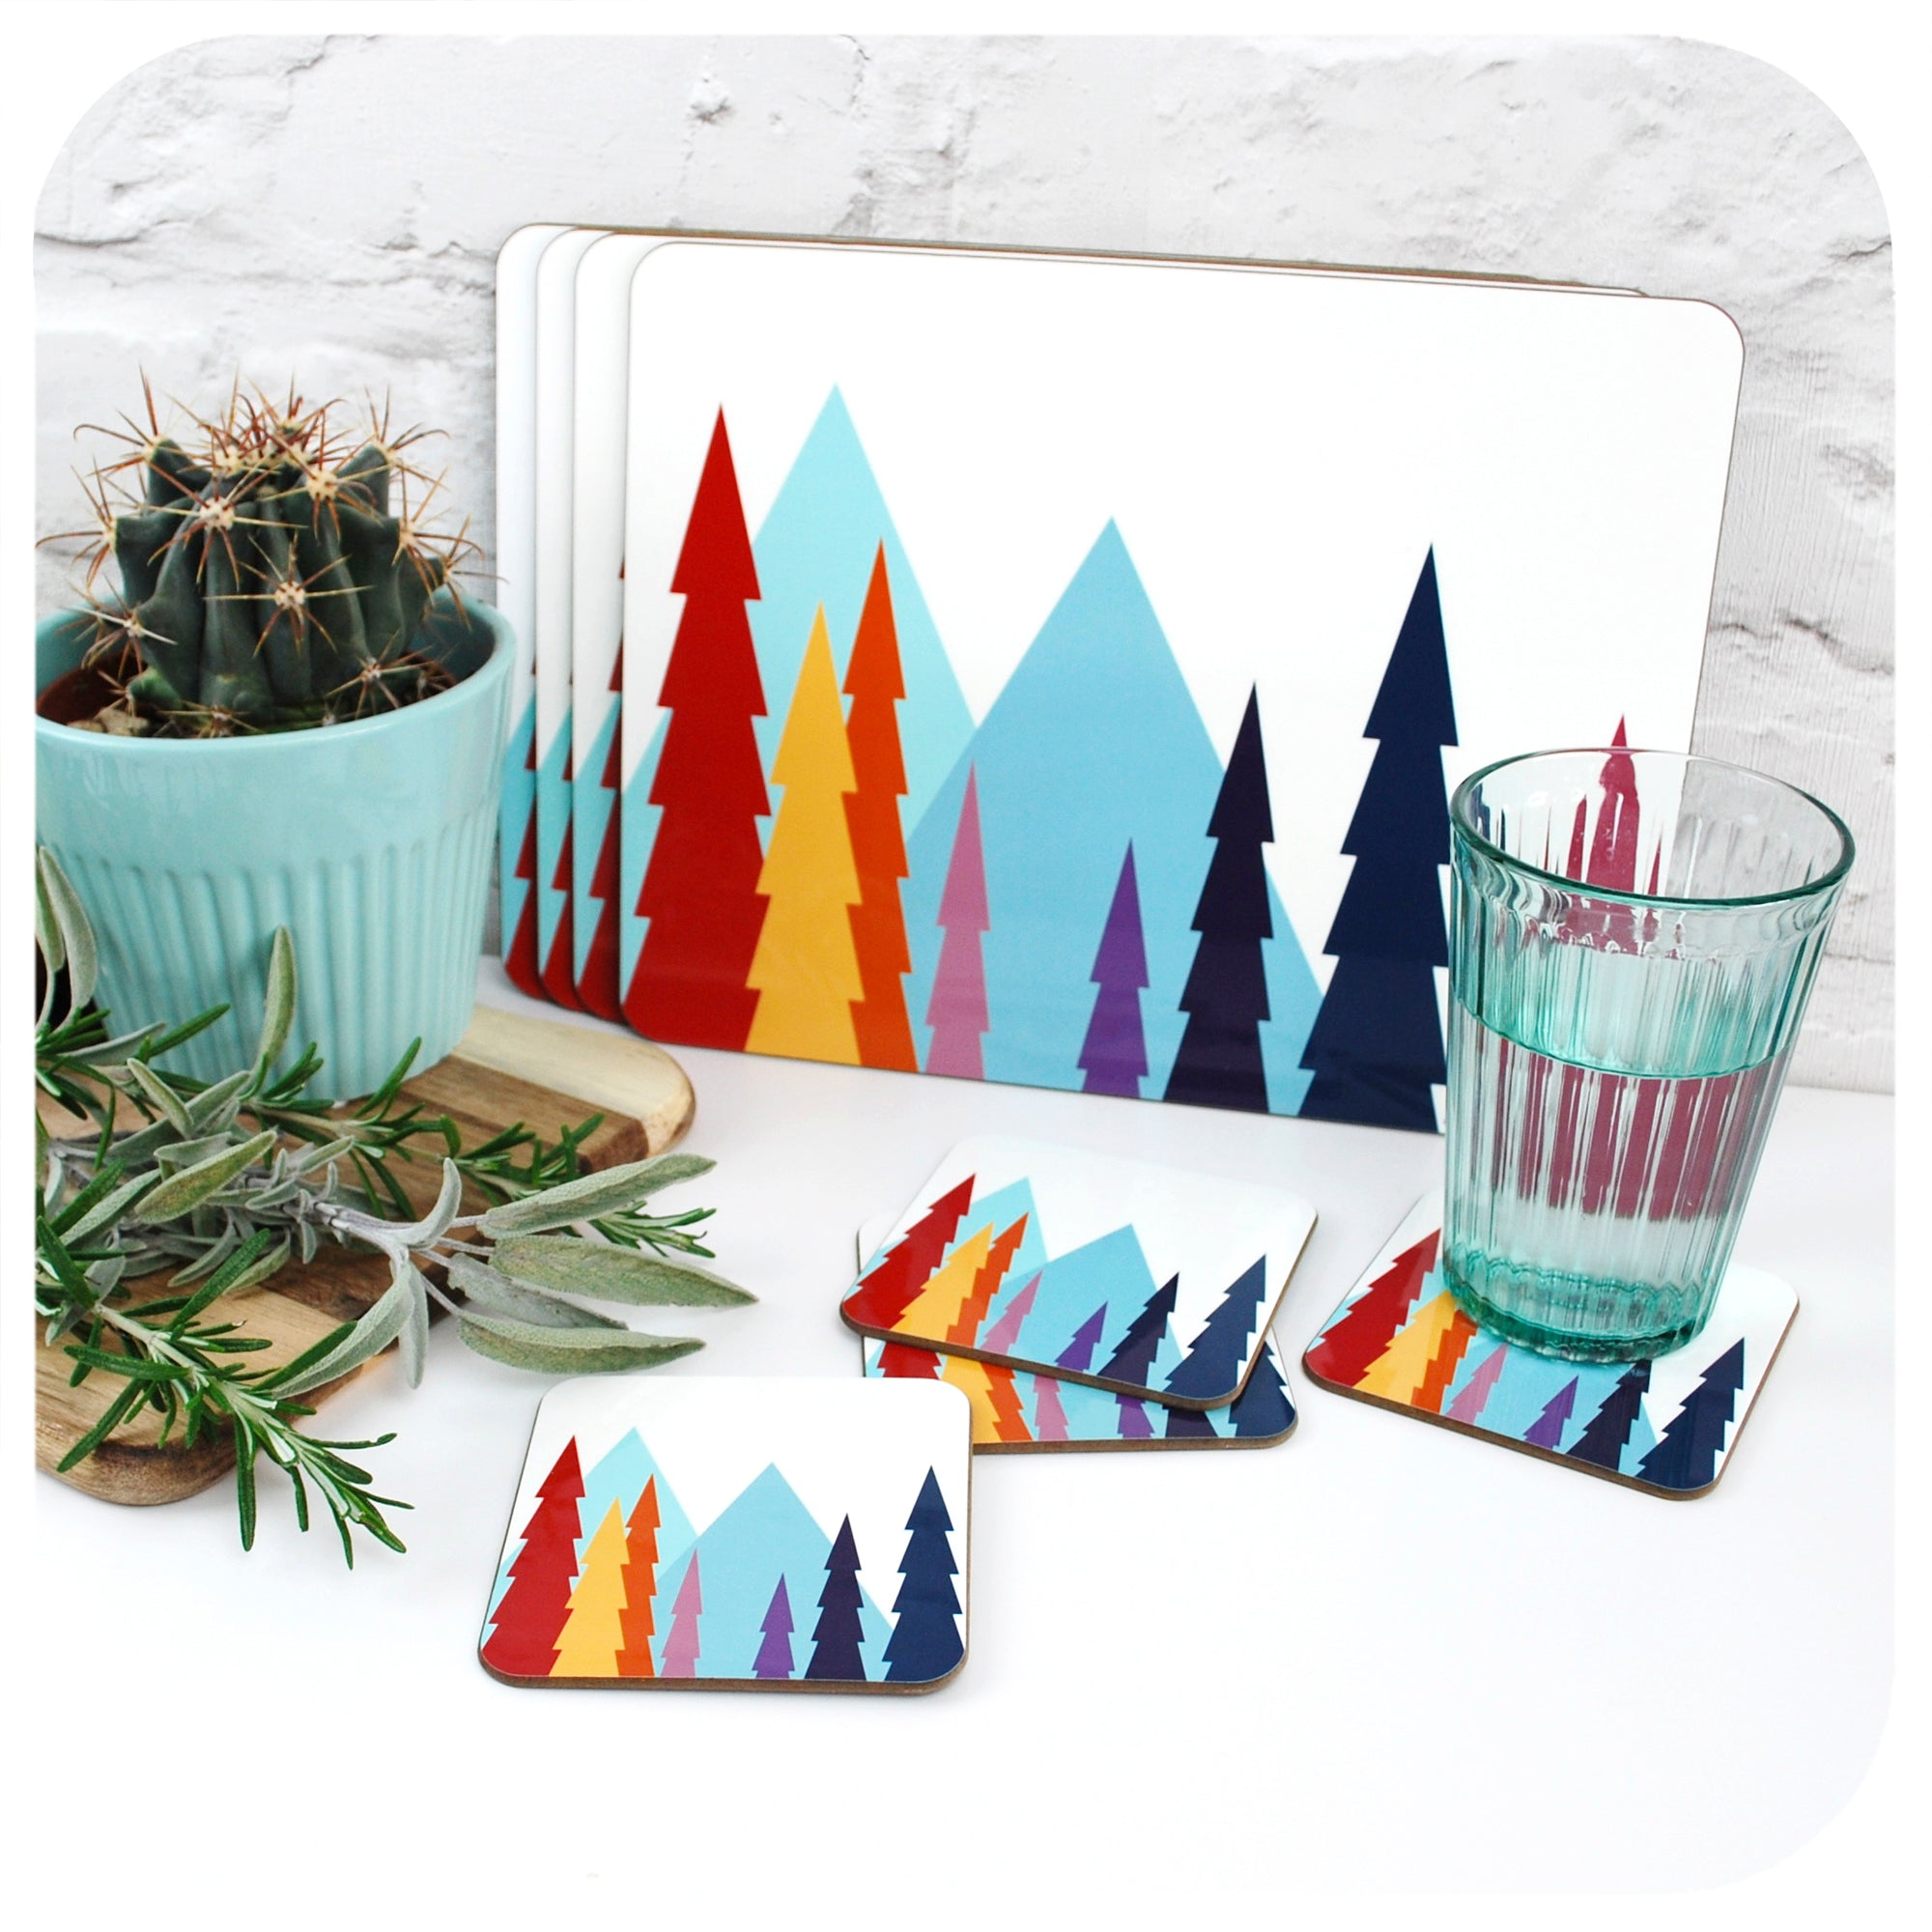 Nordic Trees Placemats and Coasters with cactus, herbs and glass of water | The Inkabilly Emporium